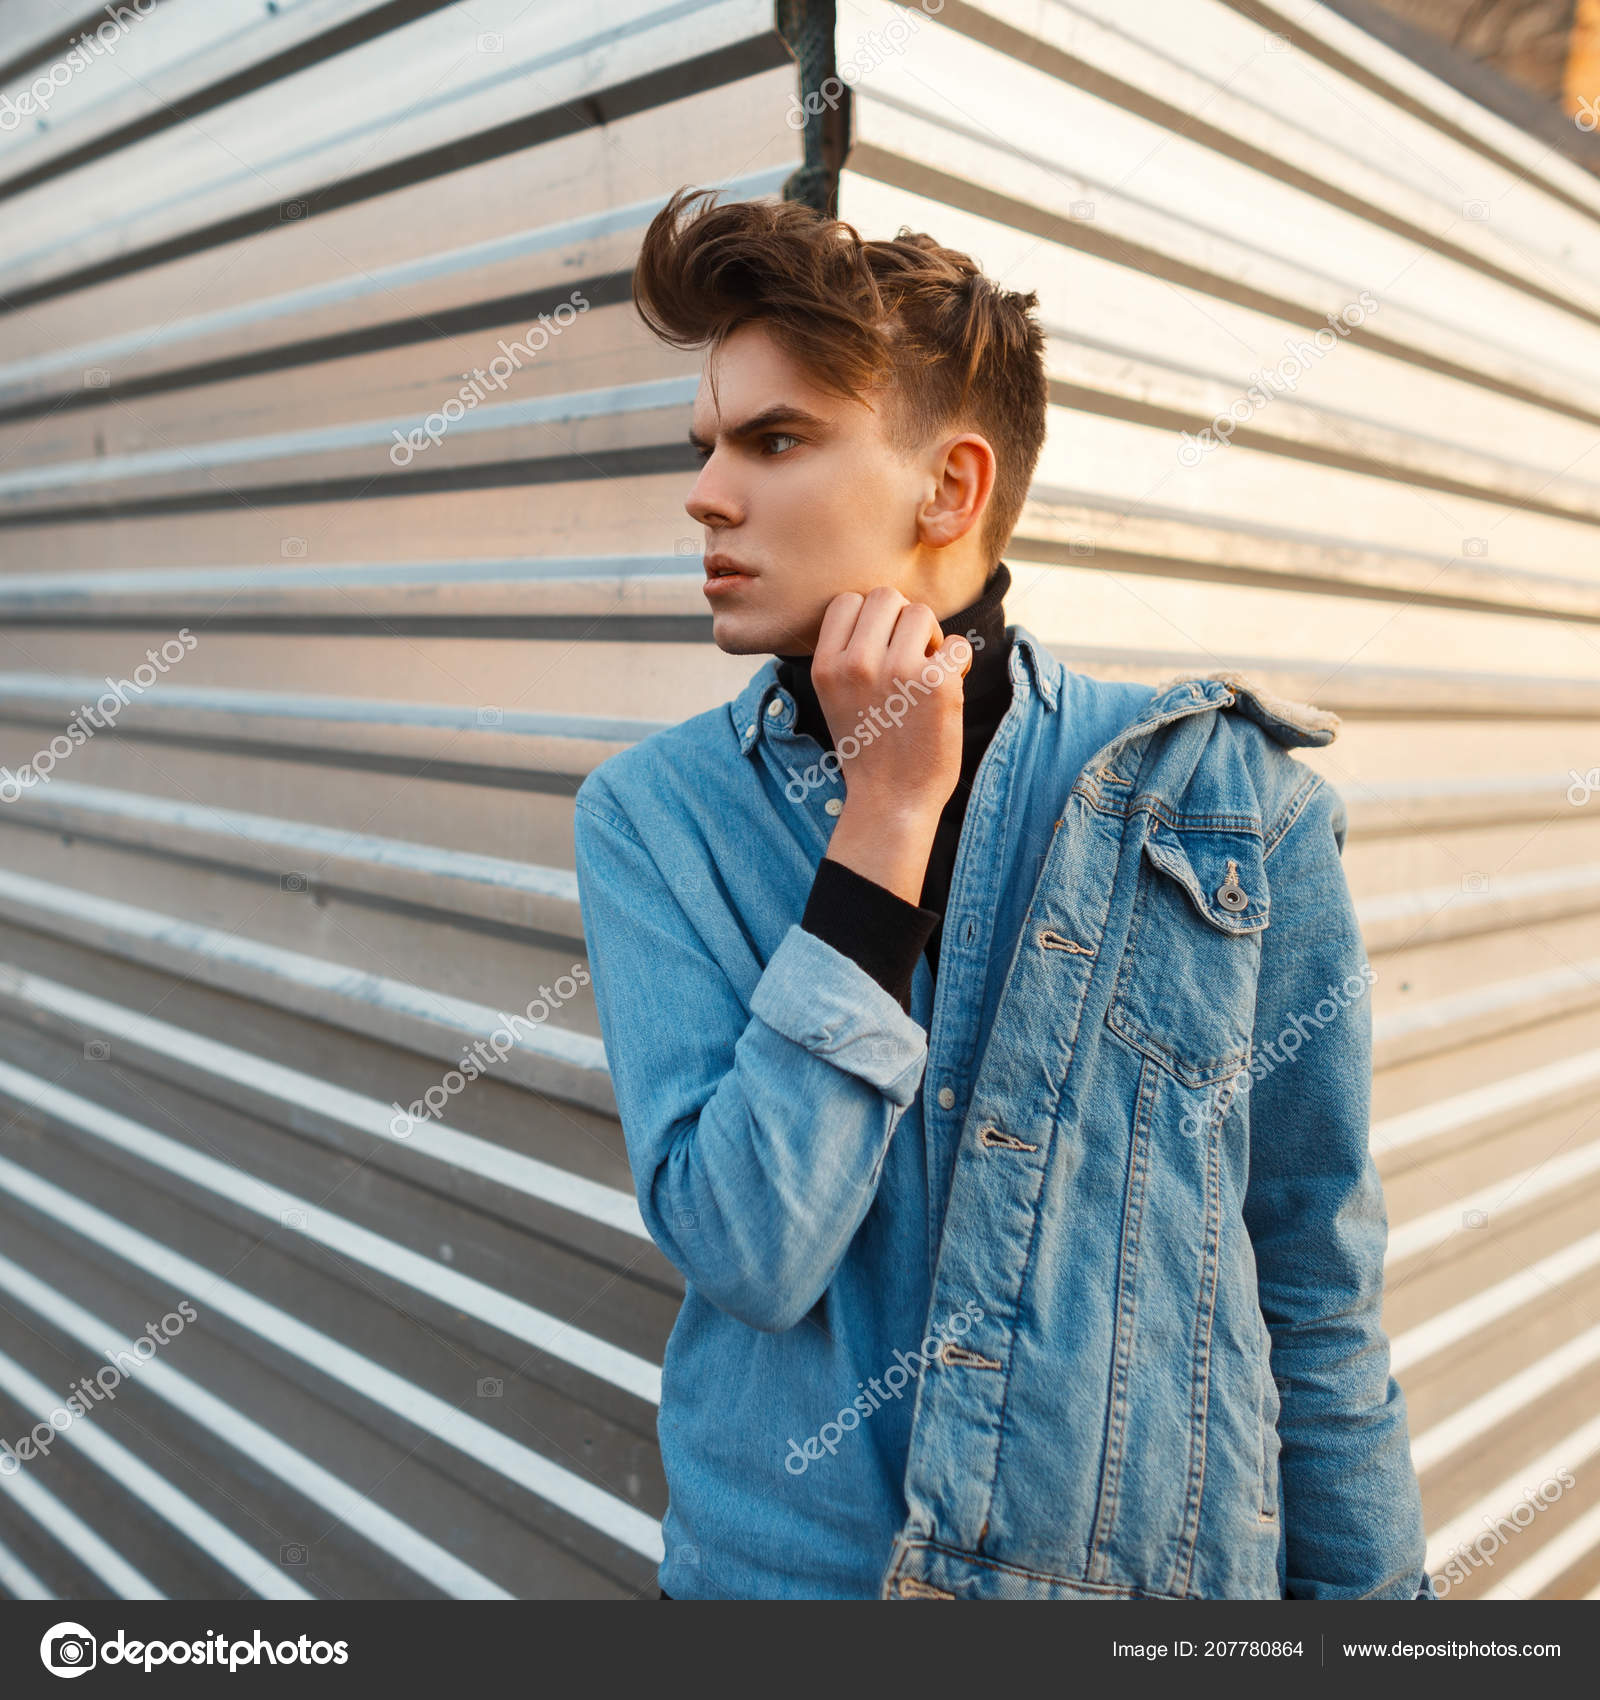 Photos hairstyle jeans image